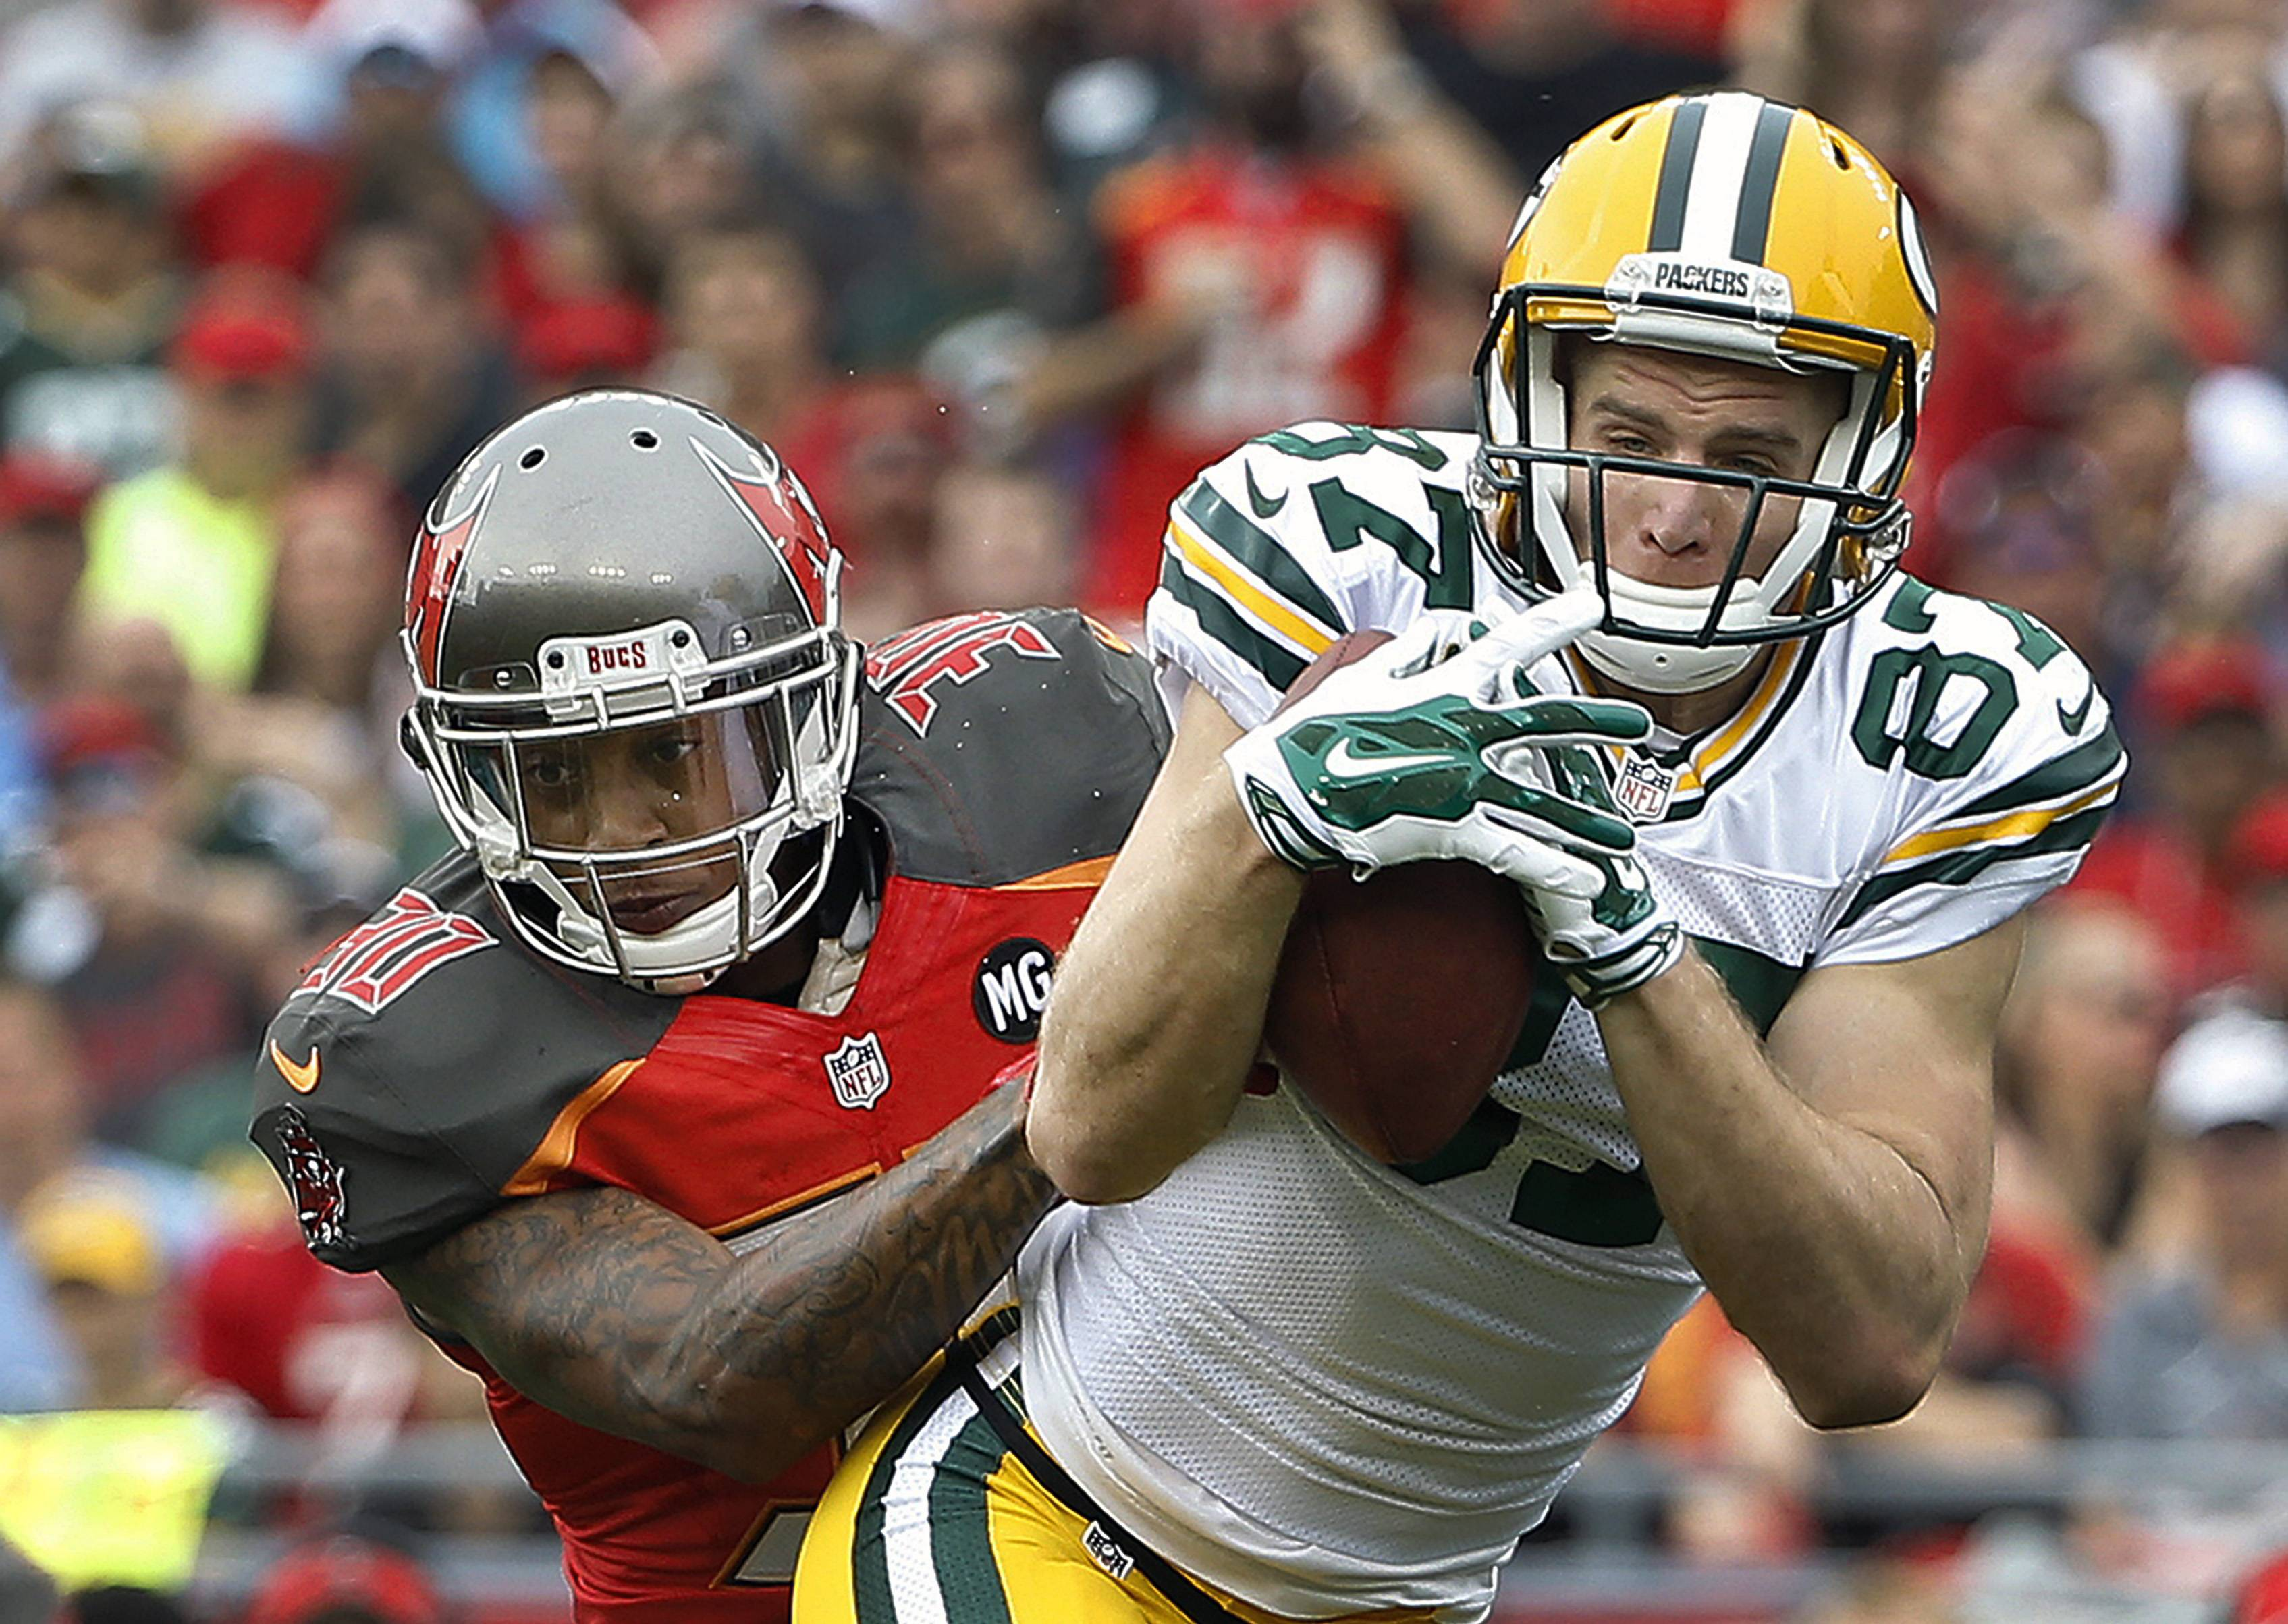 Green Bay Packers wide receiver Jordy Nelson makes a catch in front of Tampa Bay Buccaneers strong safety Bradley McDougald during the first quarter Sunday in Tampa, Fla.